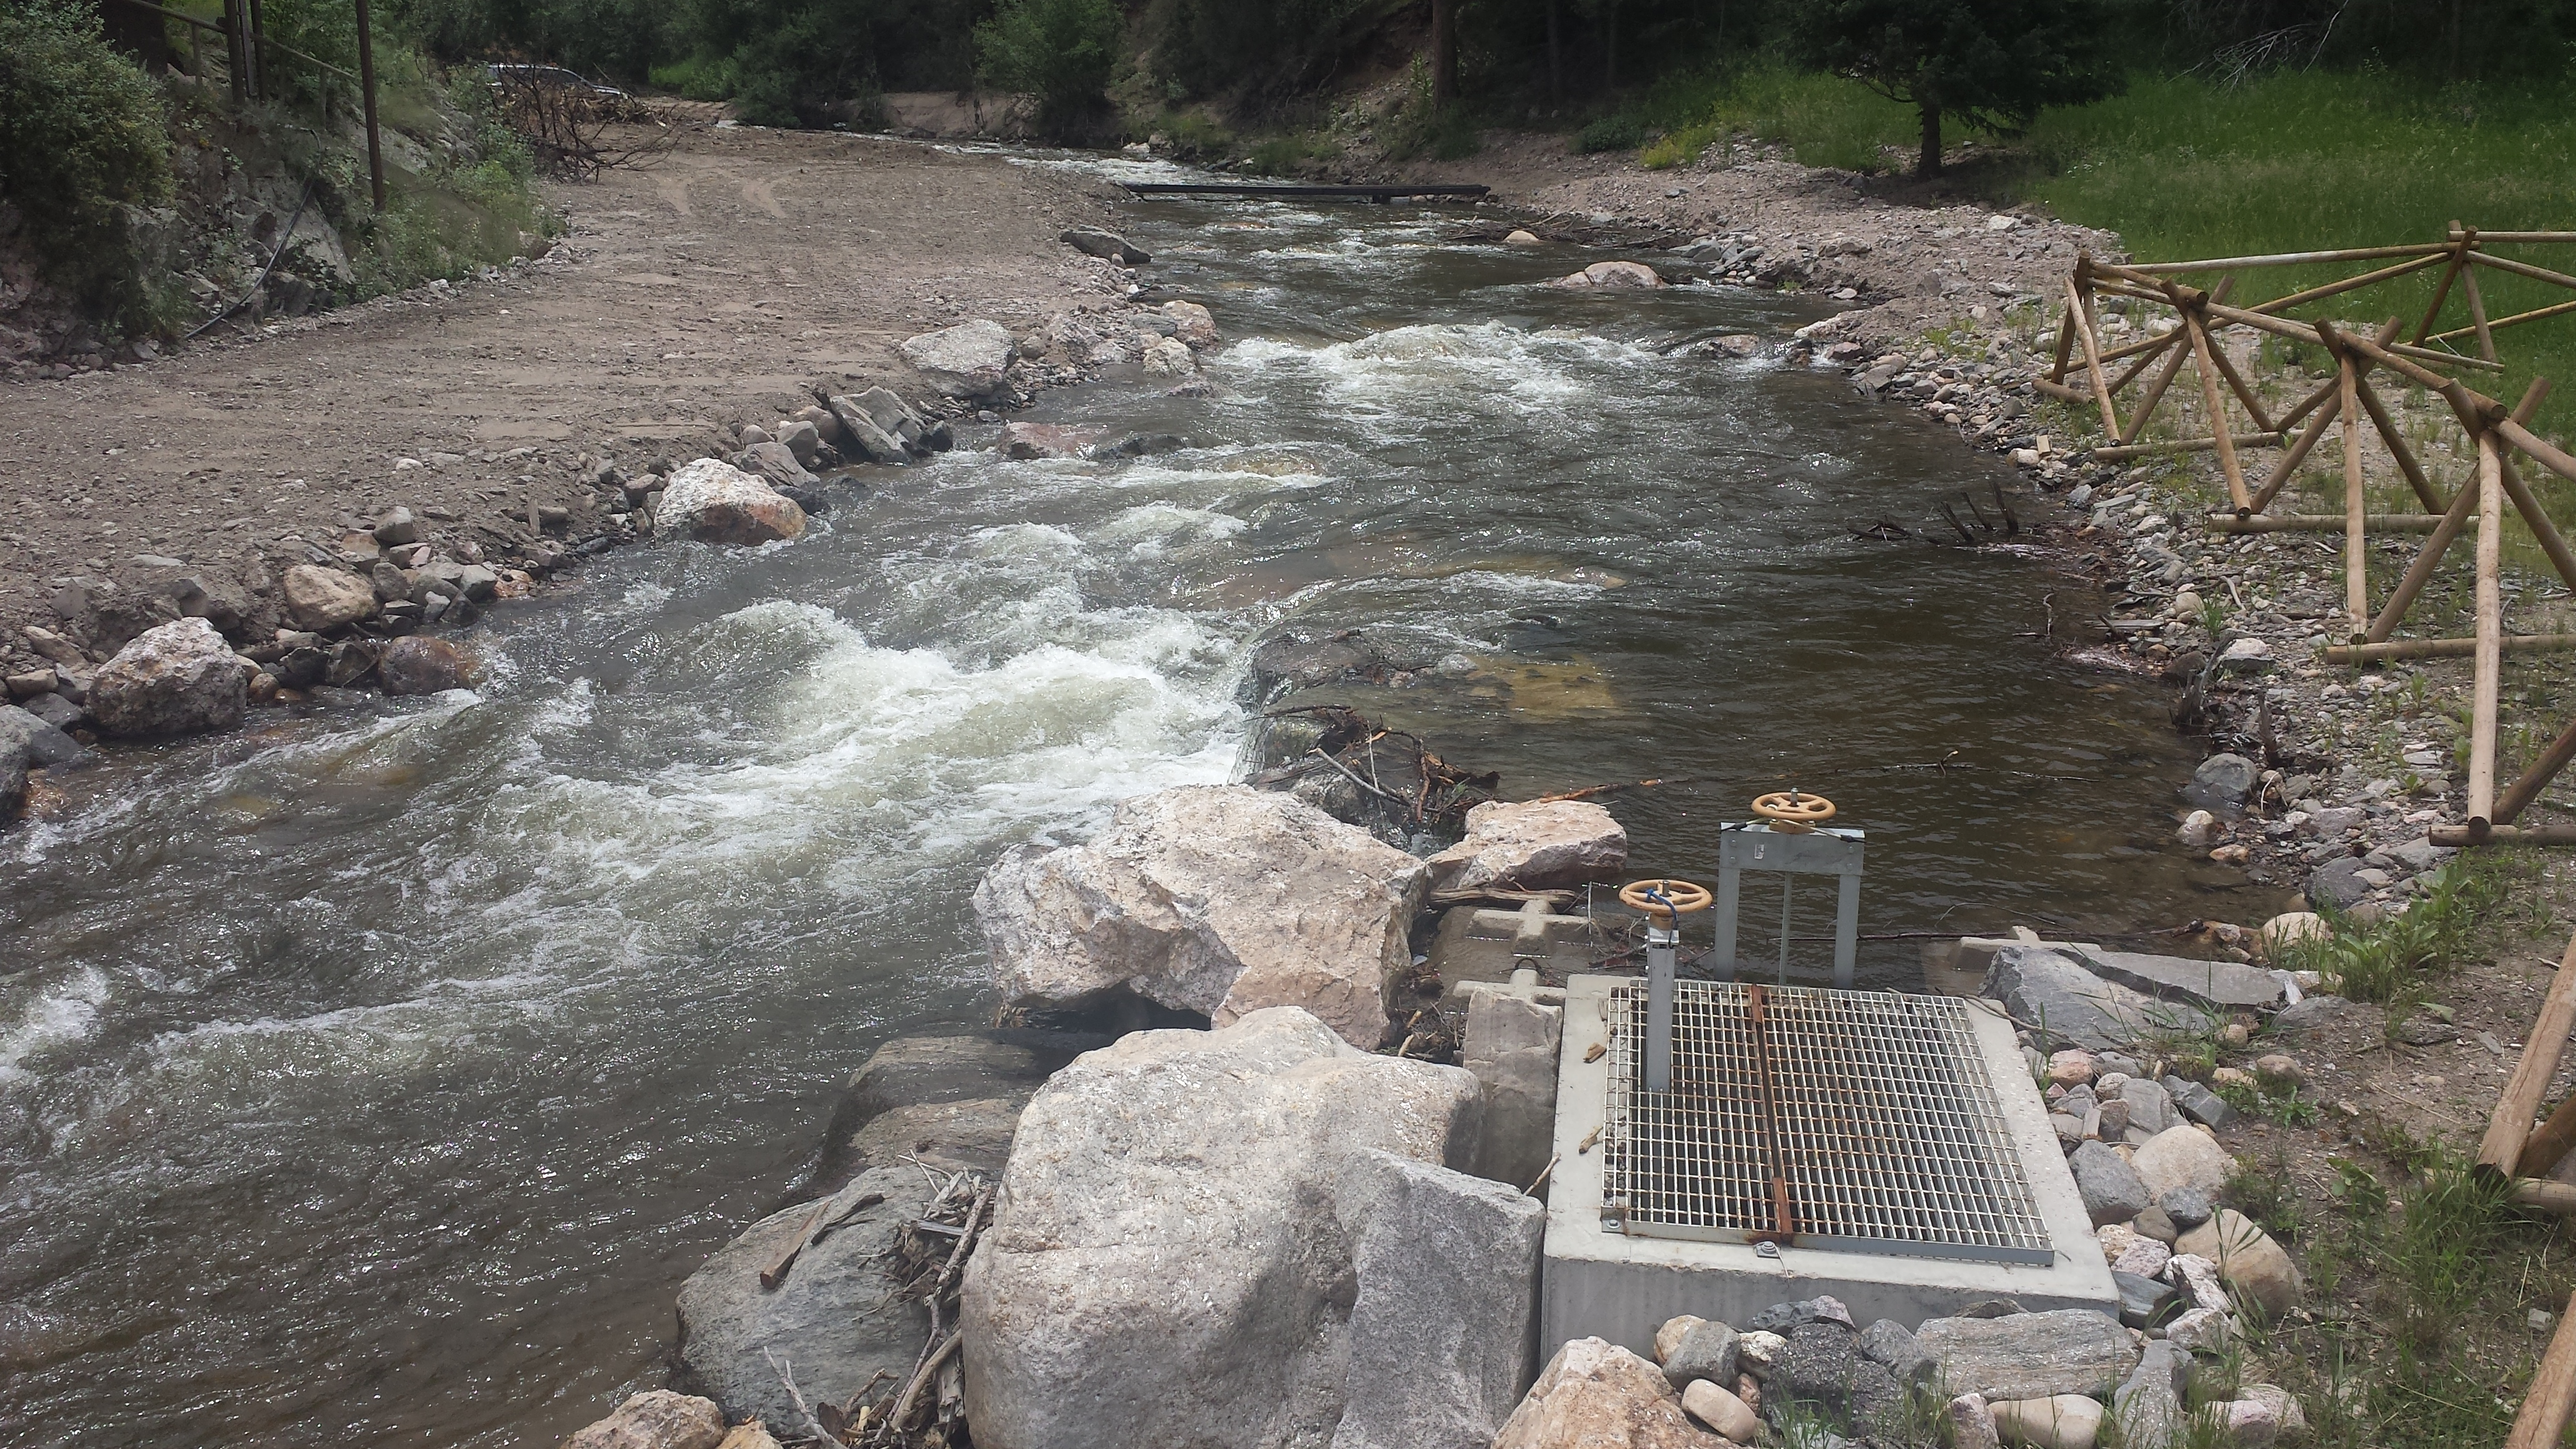 Low head boulder structures for fish-friendly irrigation diversions.